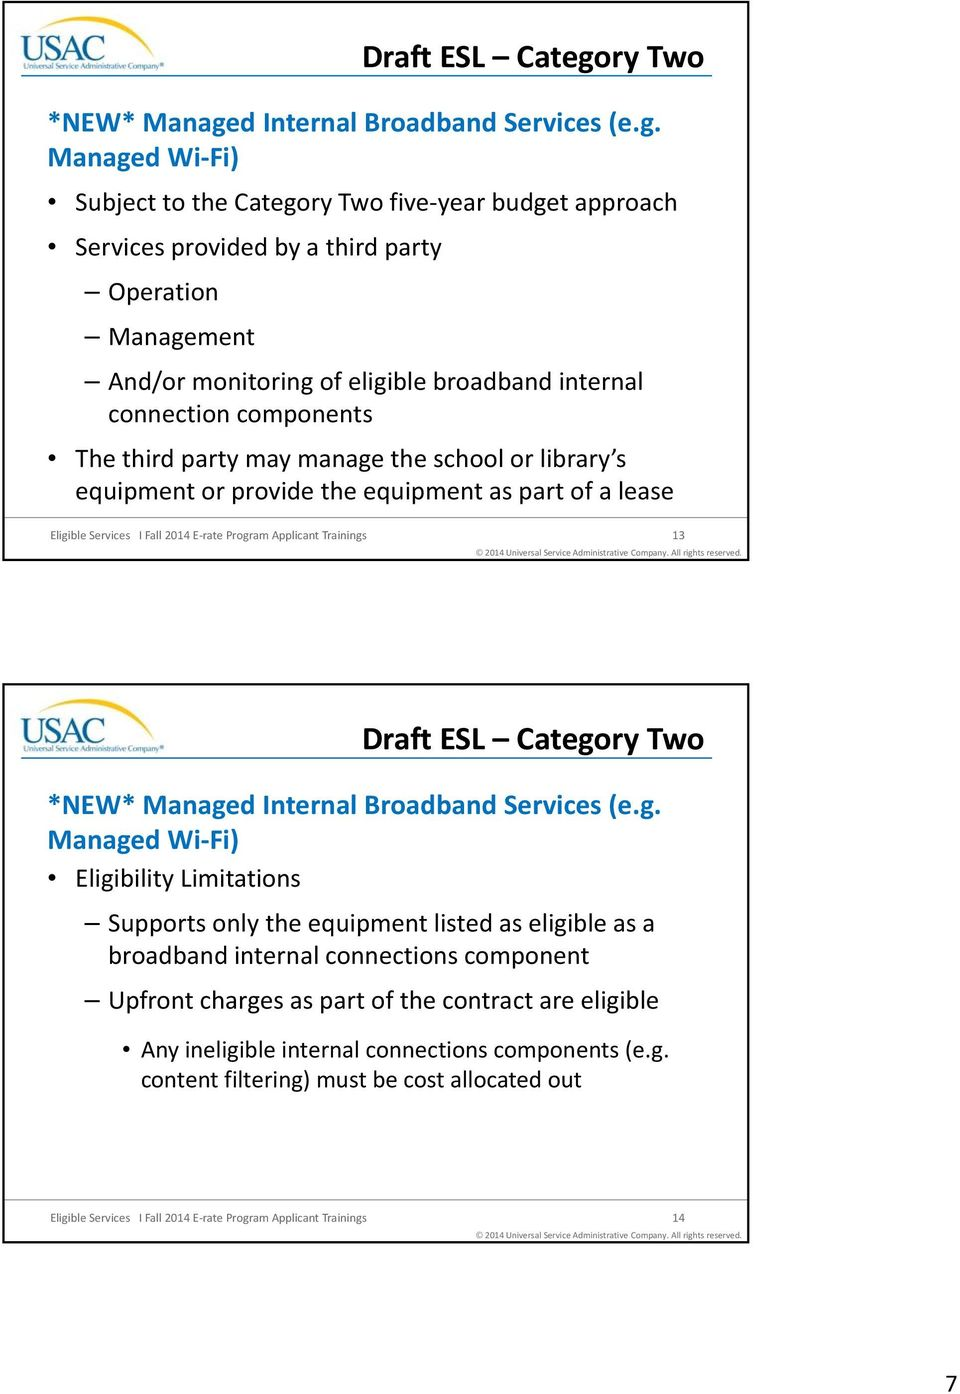 d Internal Broadband Services (e.g.